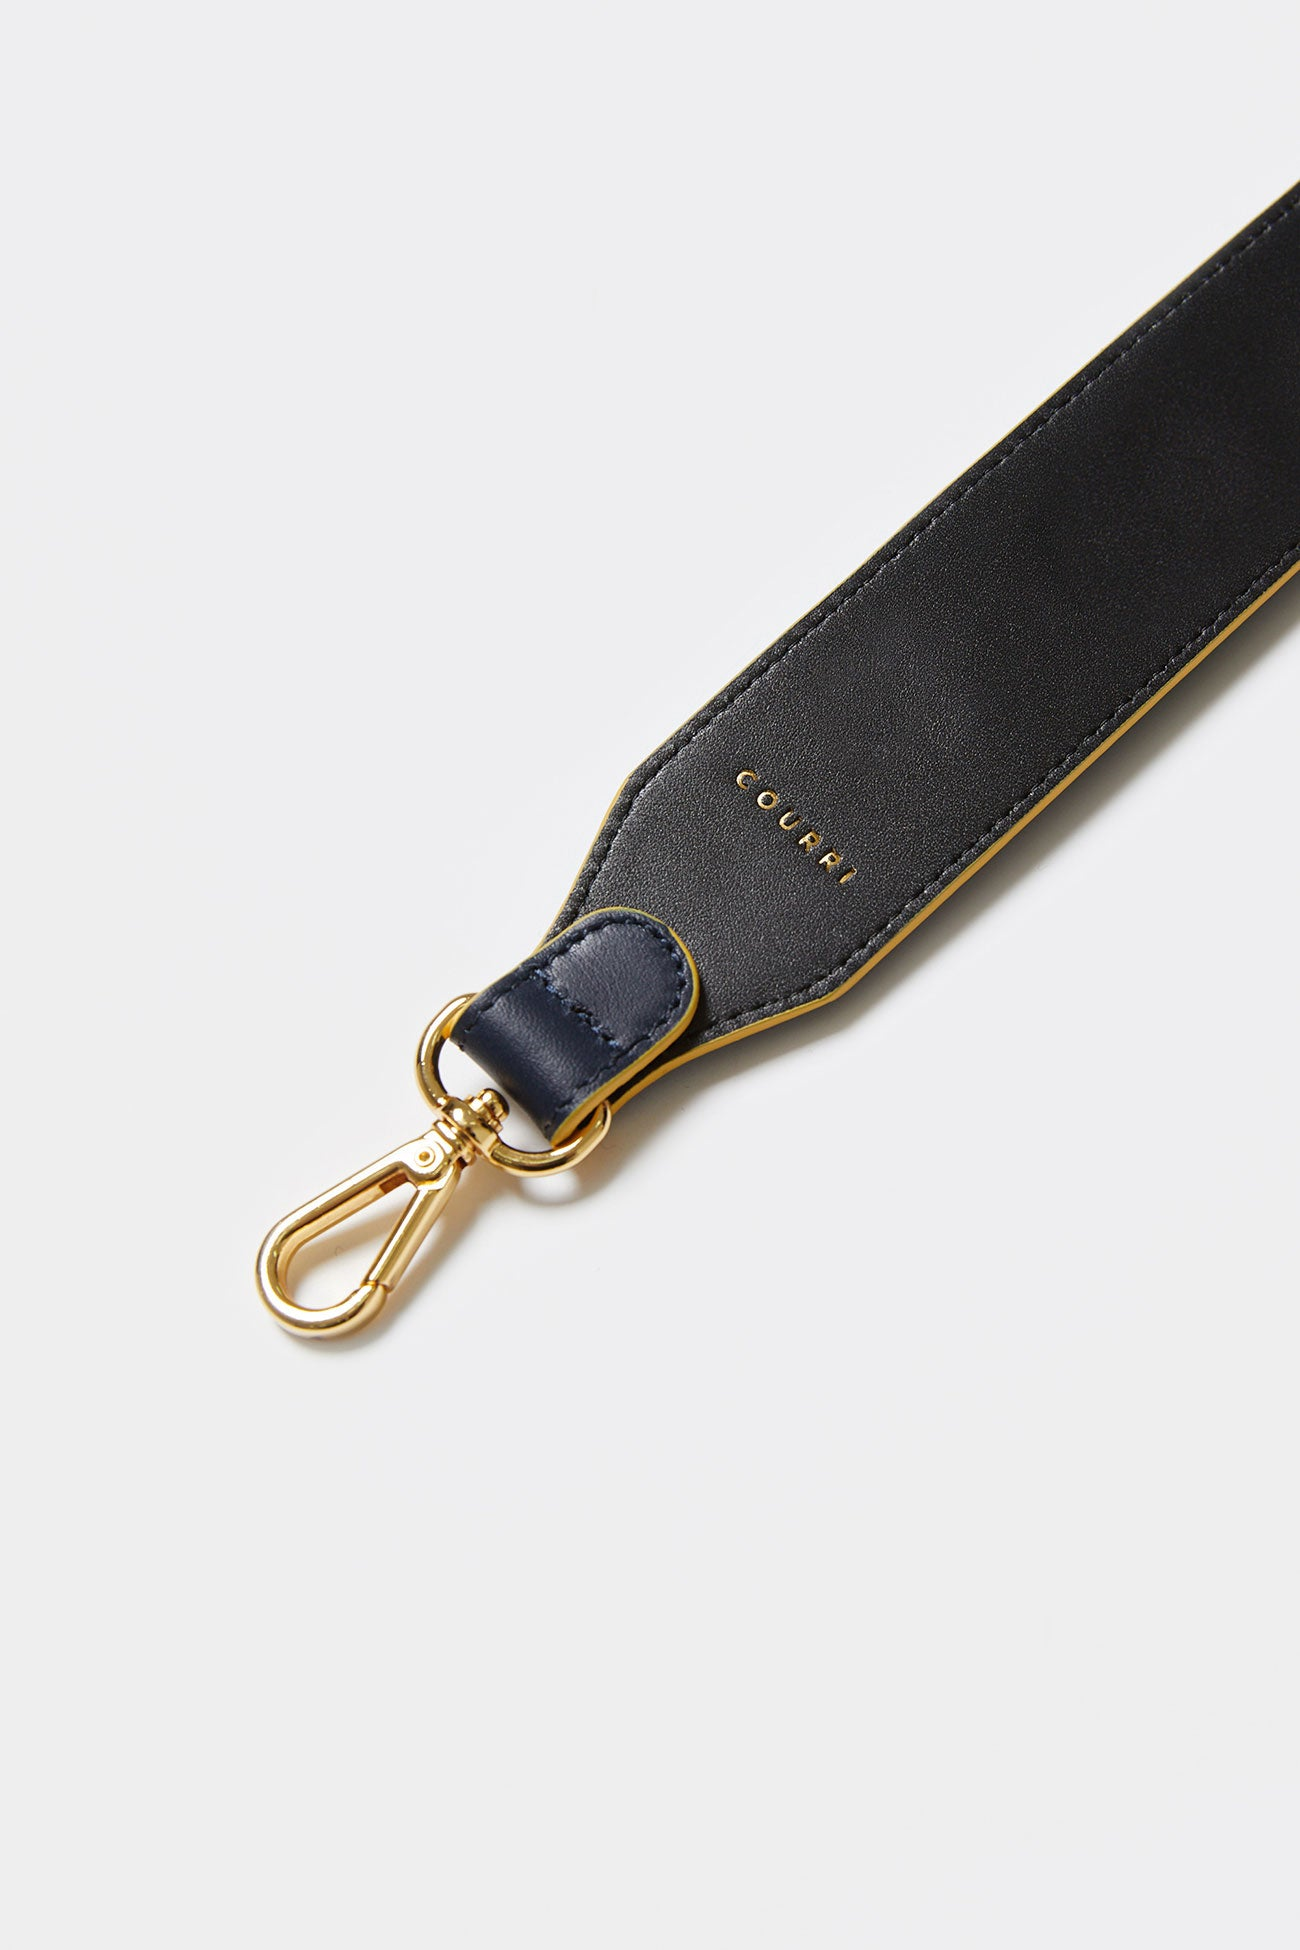 GREEN MULTI CODIE EMBELLISHED LEATHER STRAP [Long]